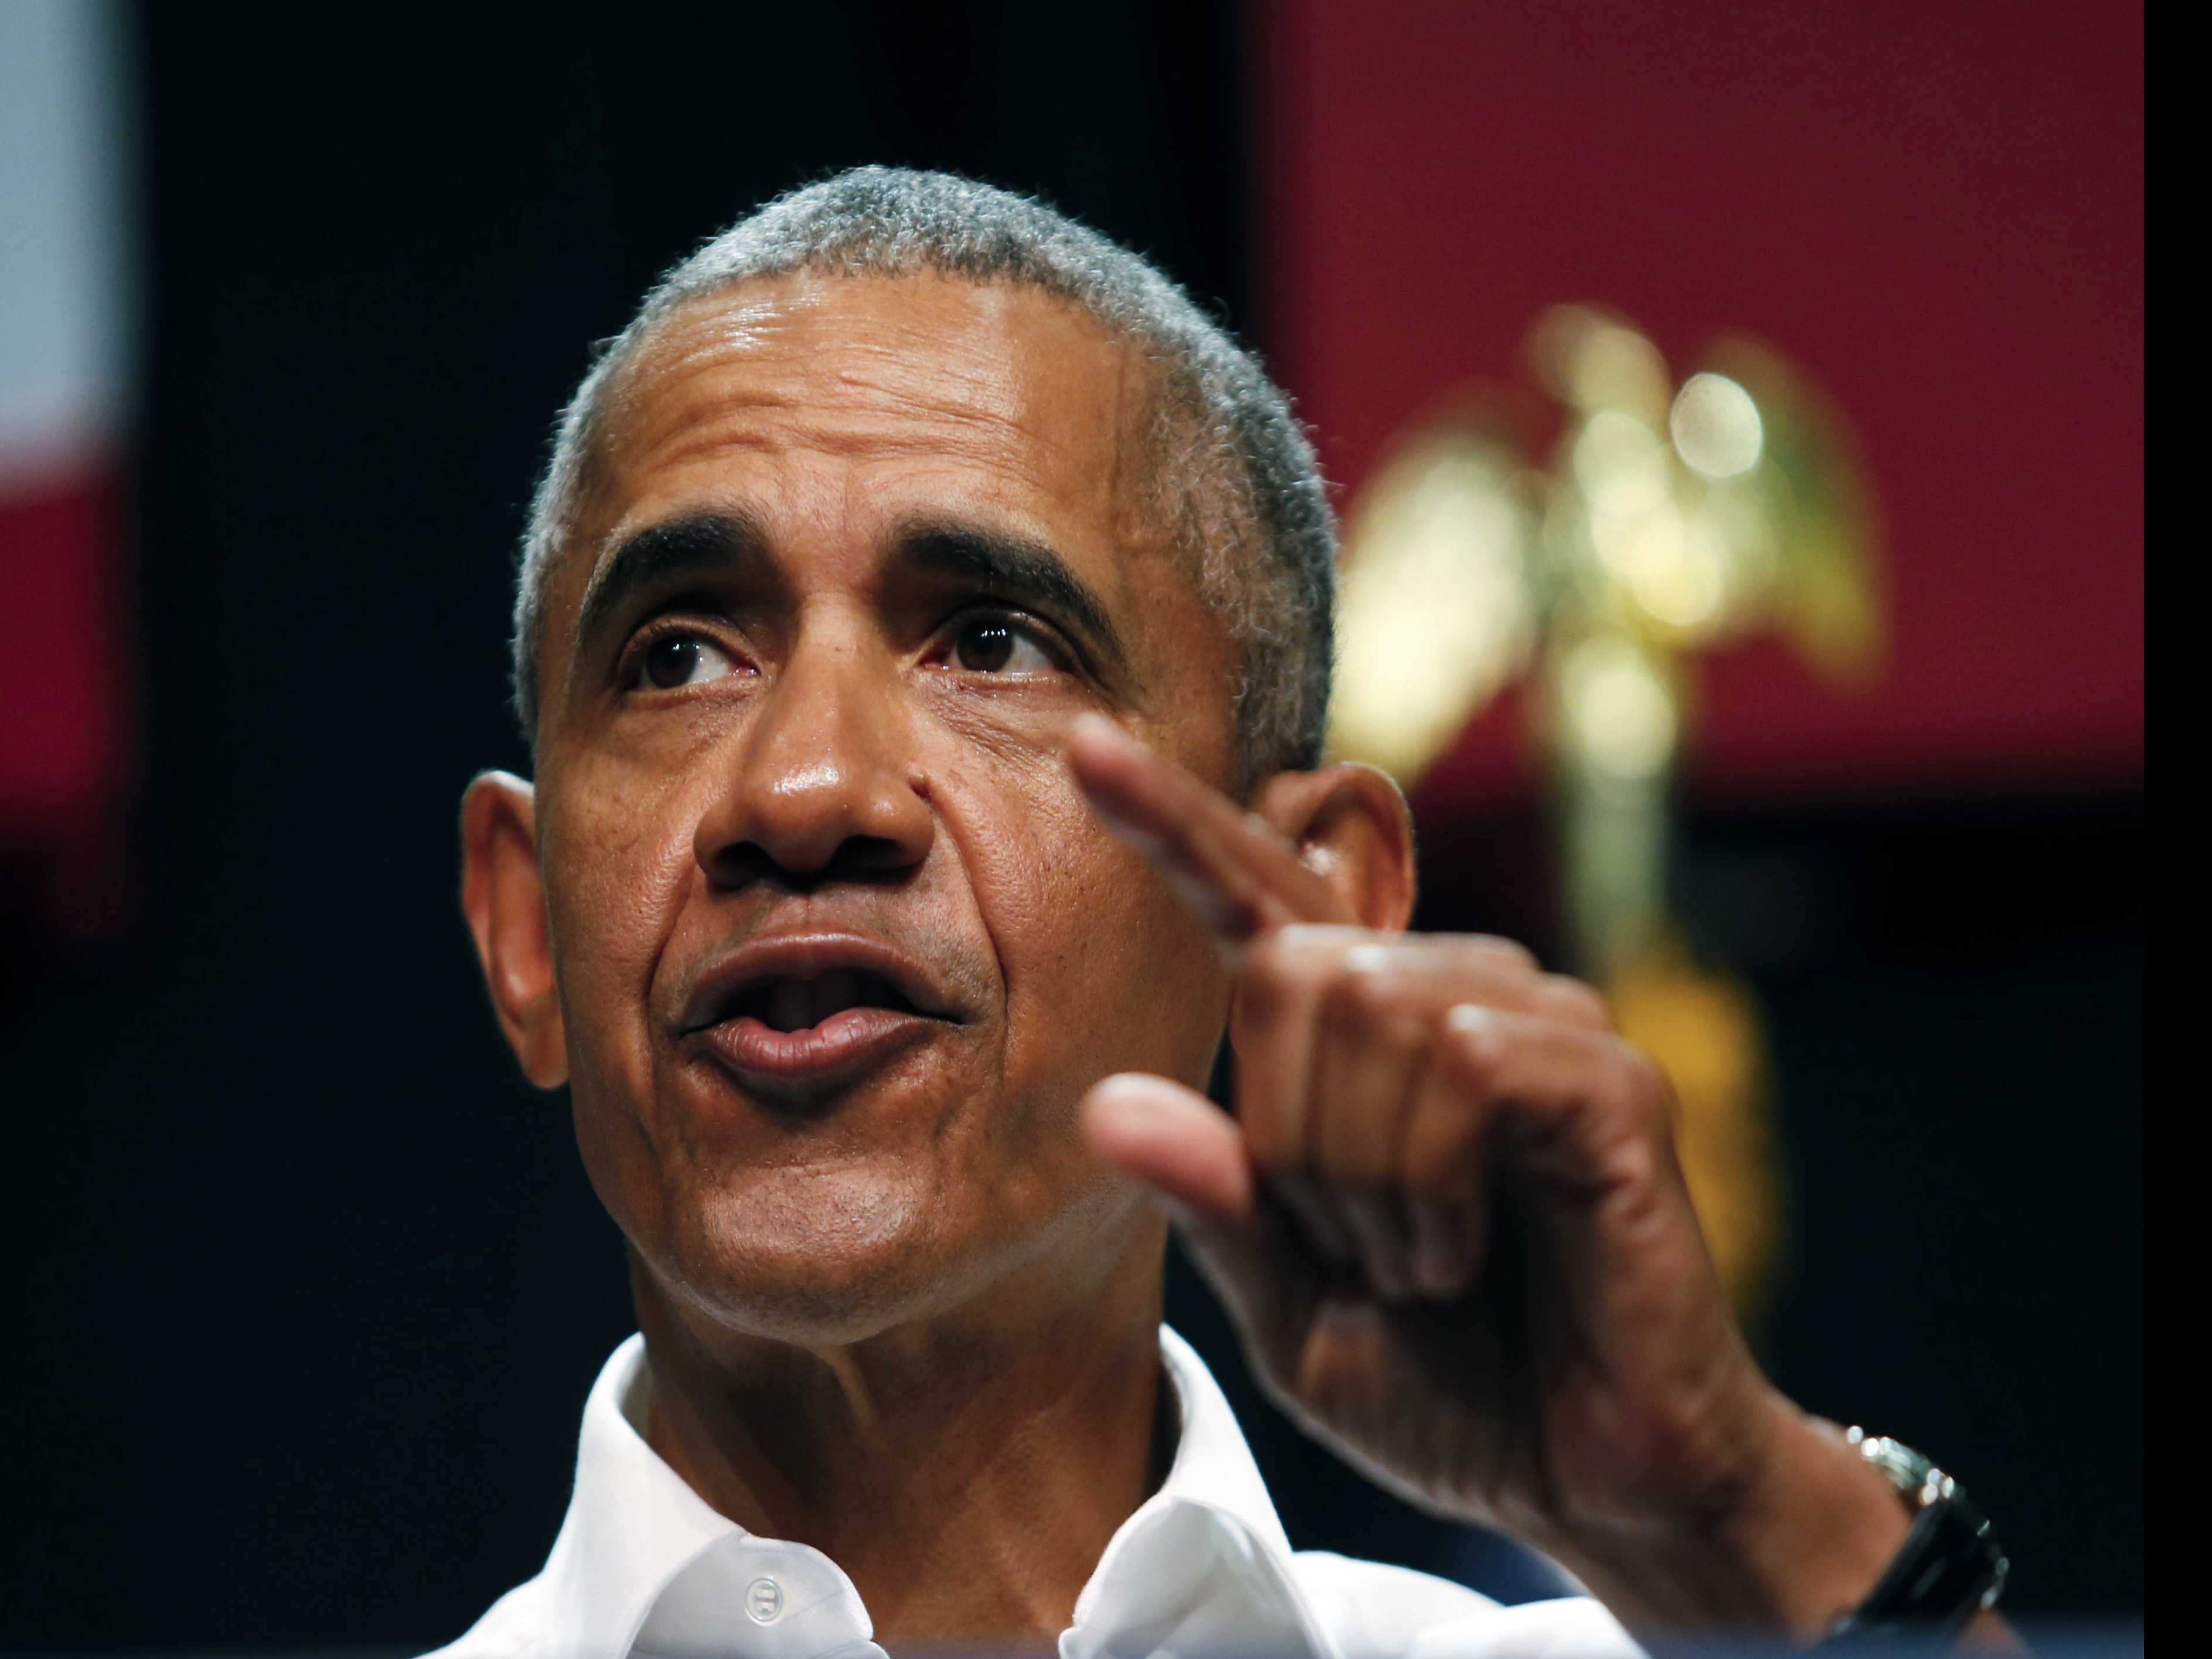 AP FACT CHECK: Obama Was Harsh Against Leakers